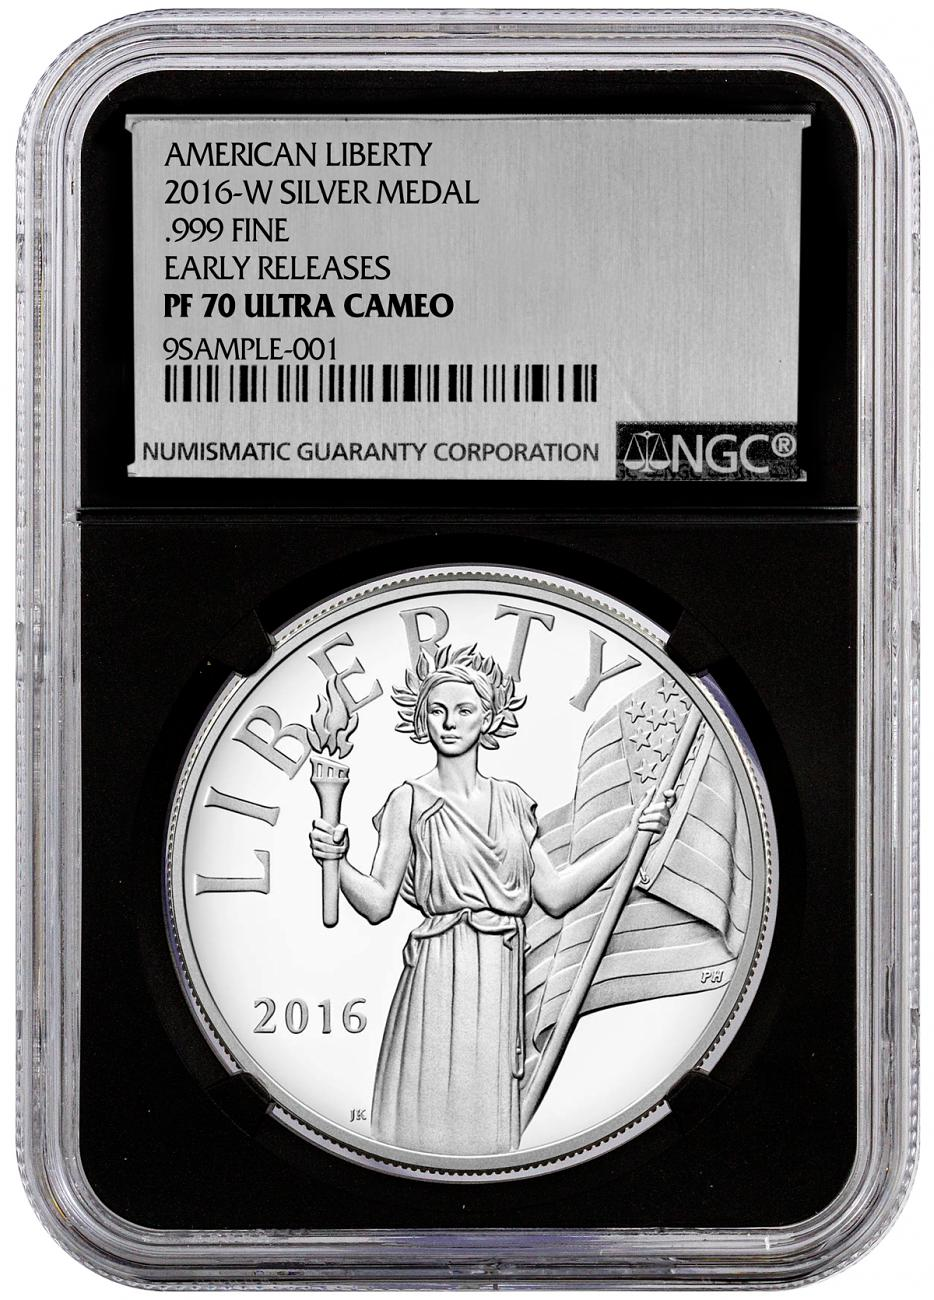 2016-W 1 oz. Proof Silver American Liberty Medal - NGC PF70 UC Early Releases (Silver Foil Label with Black Core)